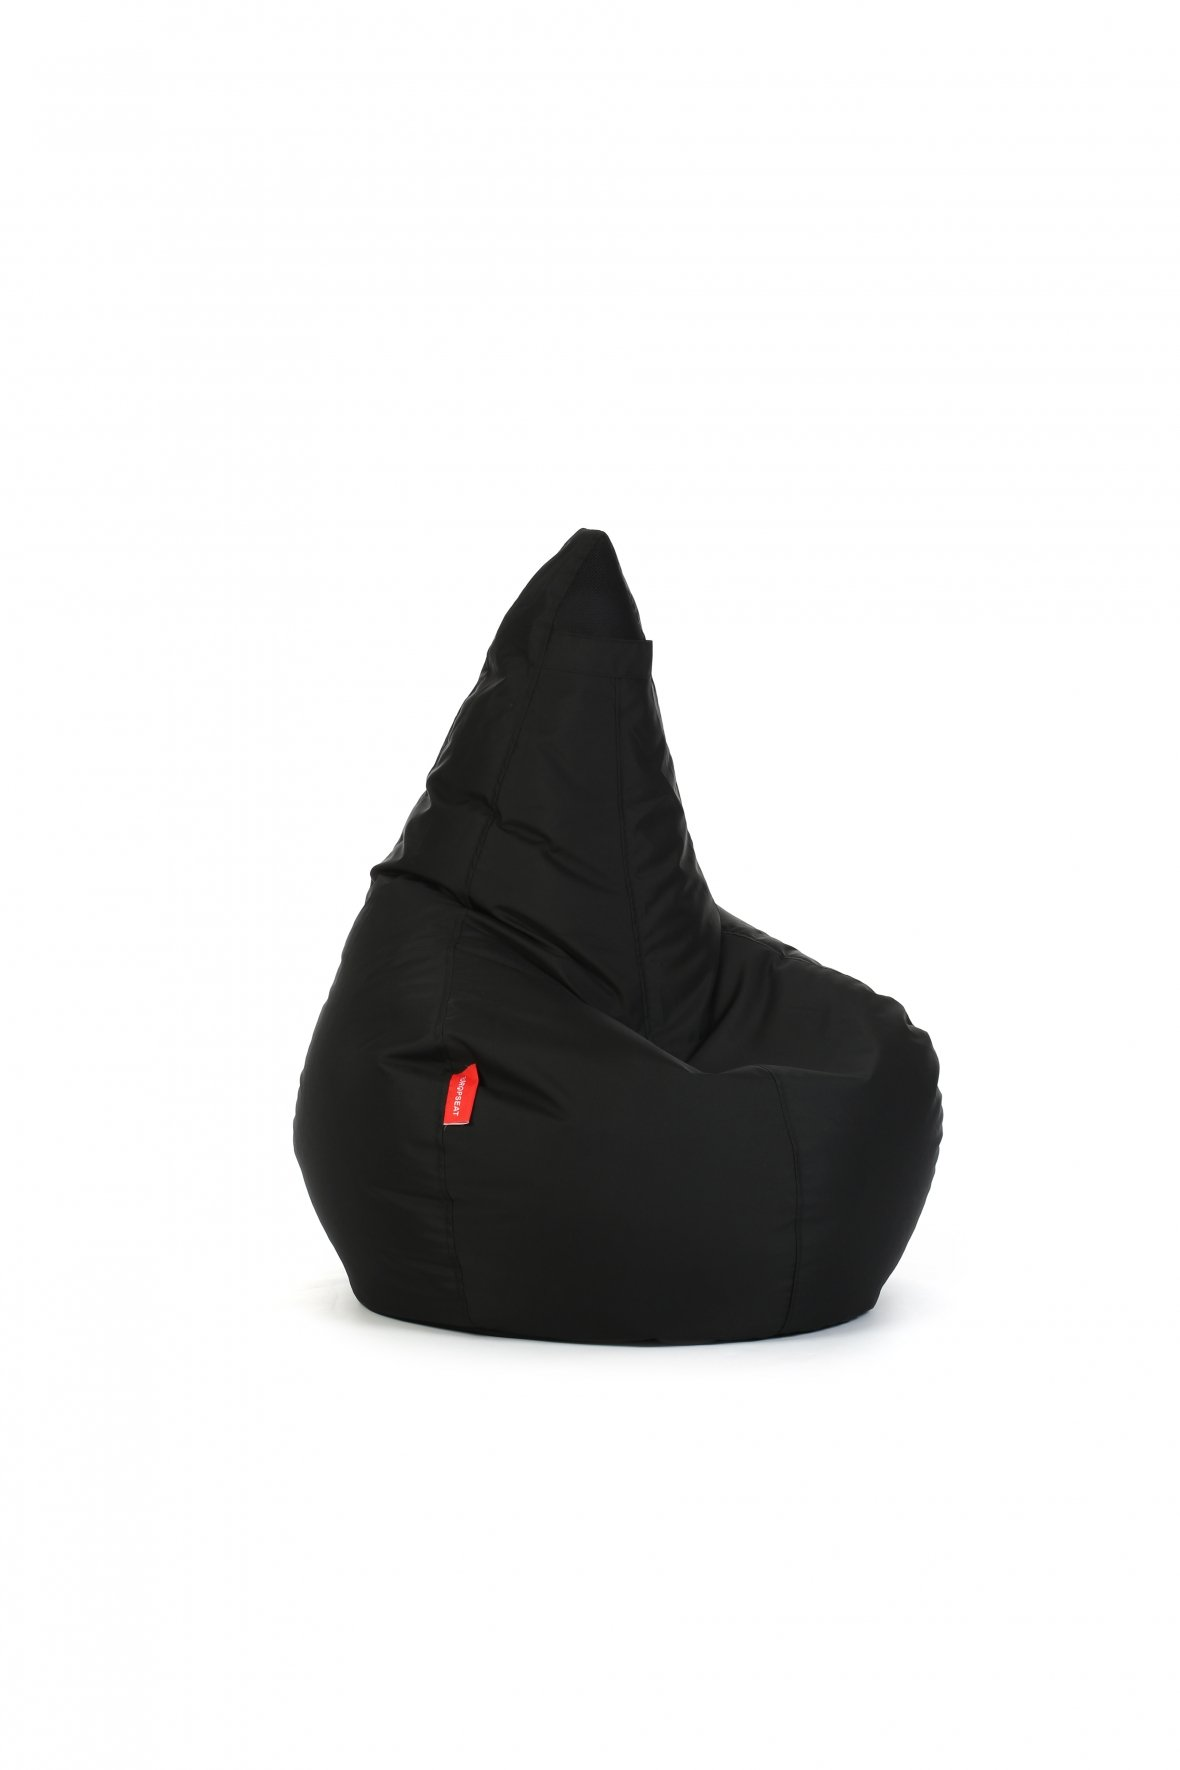 Black beanbag Dropseat